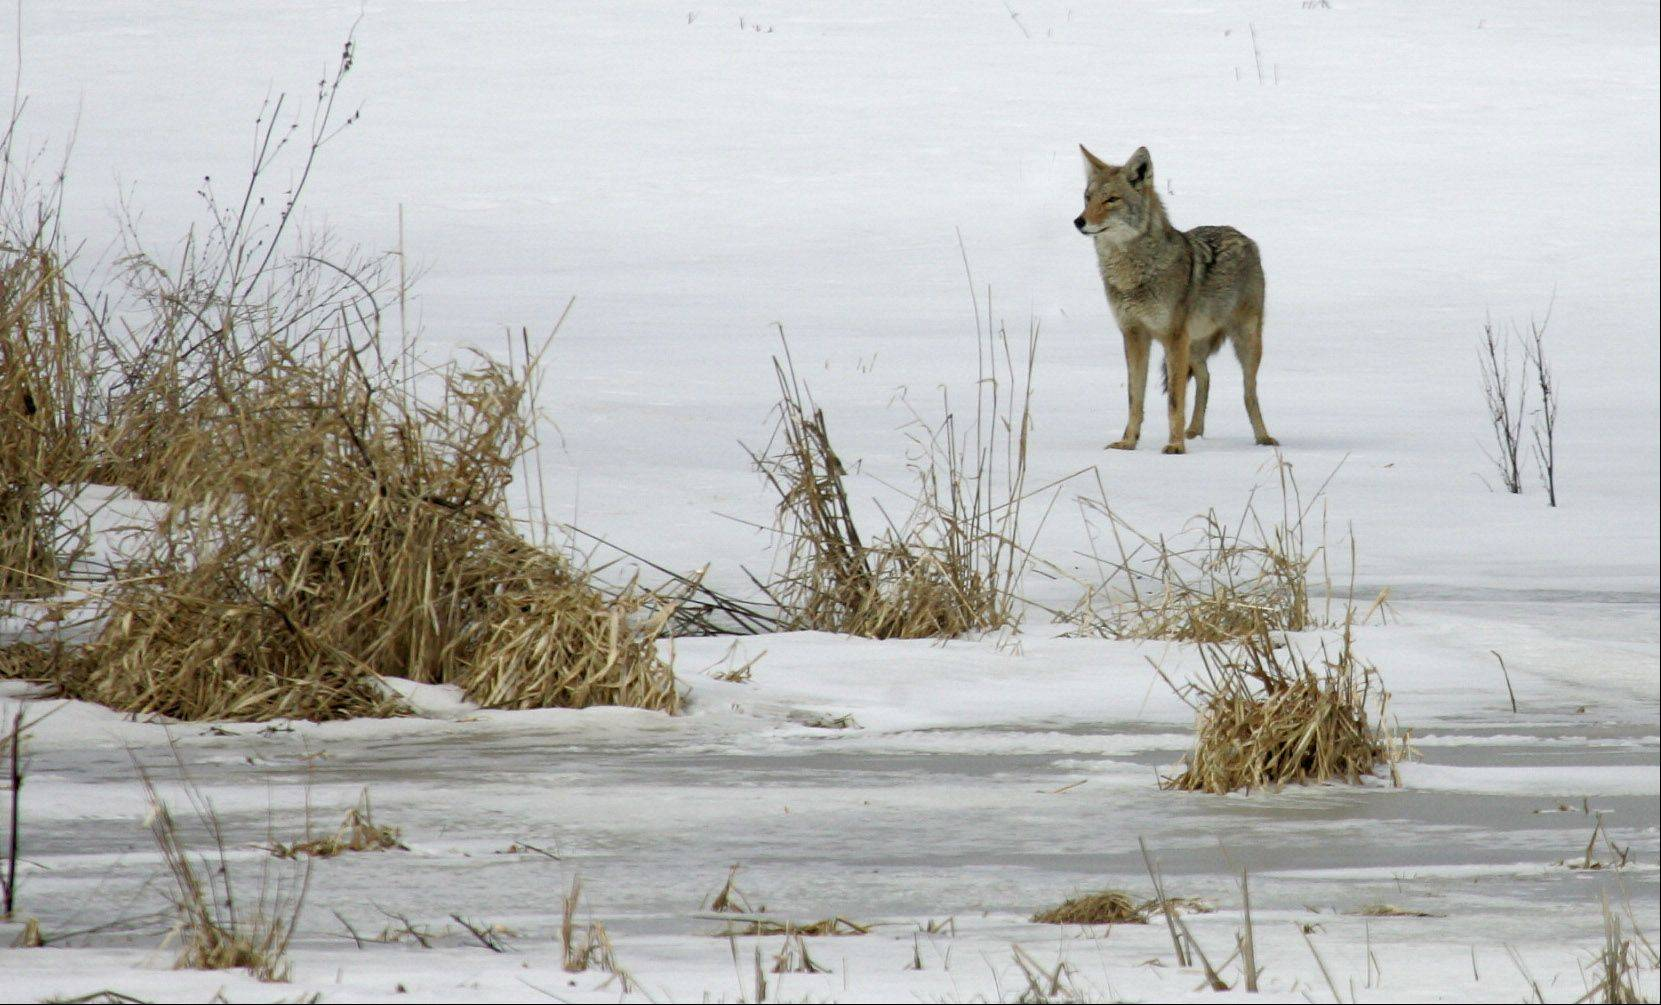 A coyote walks across a snow covered field in unincorporated Mundelein on Tuesday. According to coyote expert Stan Gehrt, populations of urban coyotes are much higher than guessed and help control geese populations and they also pose little threat to humans.